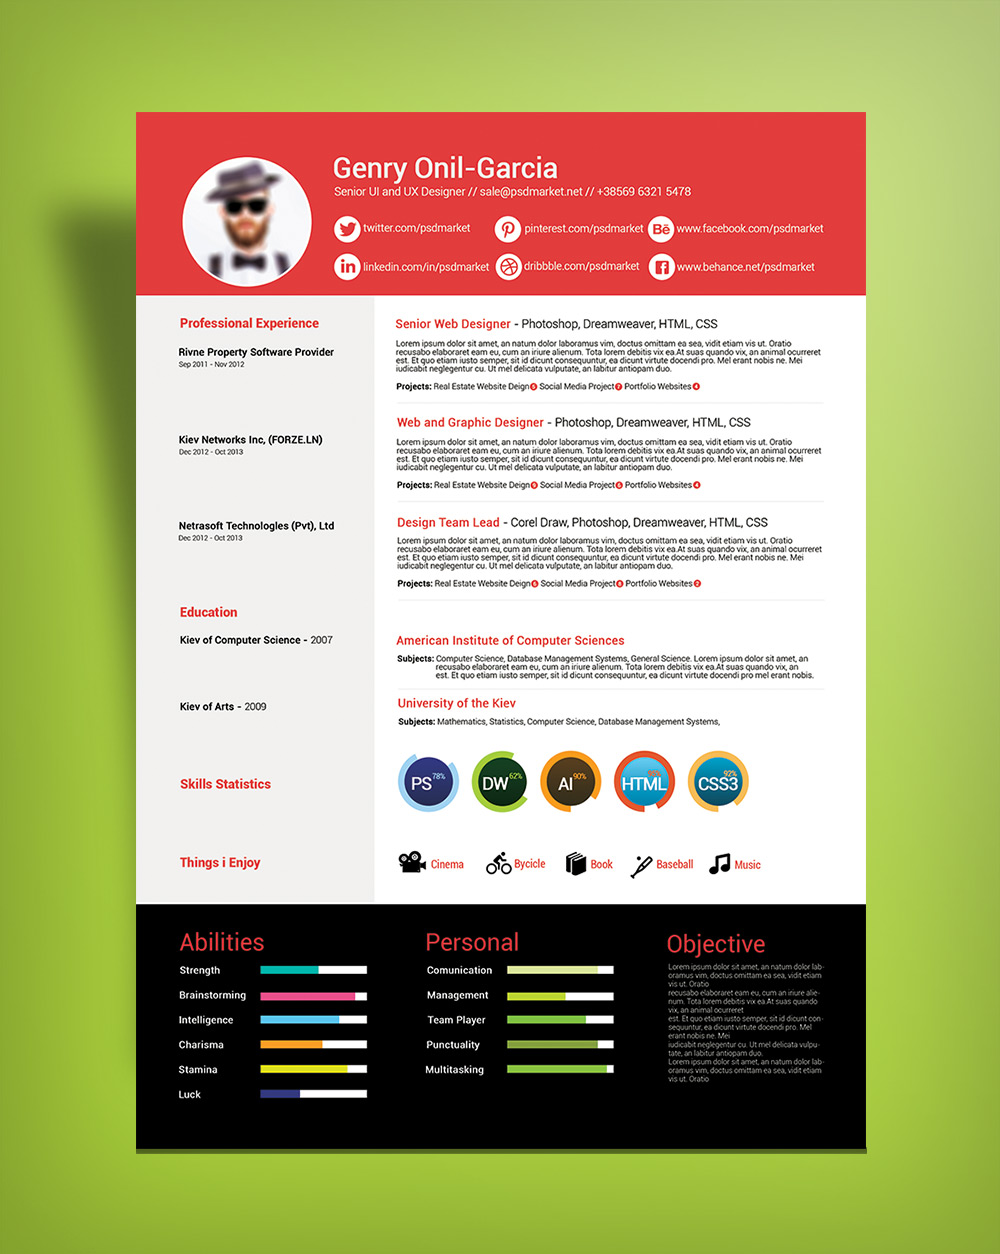 Free Simple Resume Design Template For UI & UX Desingers-Good Resume For Good Job (1)